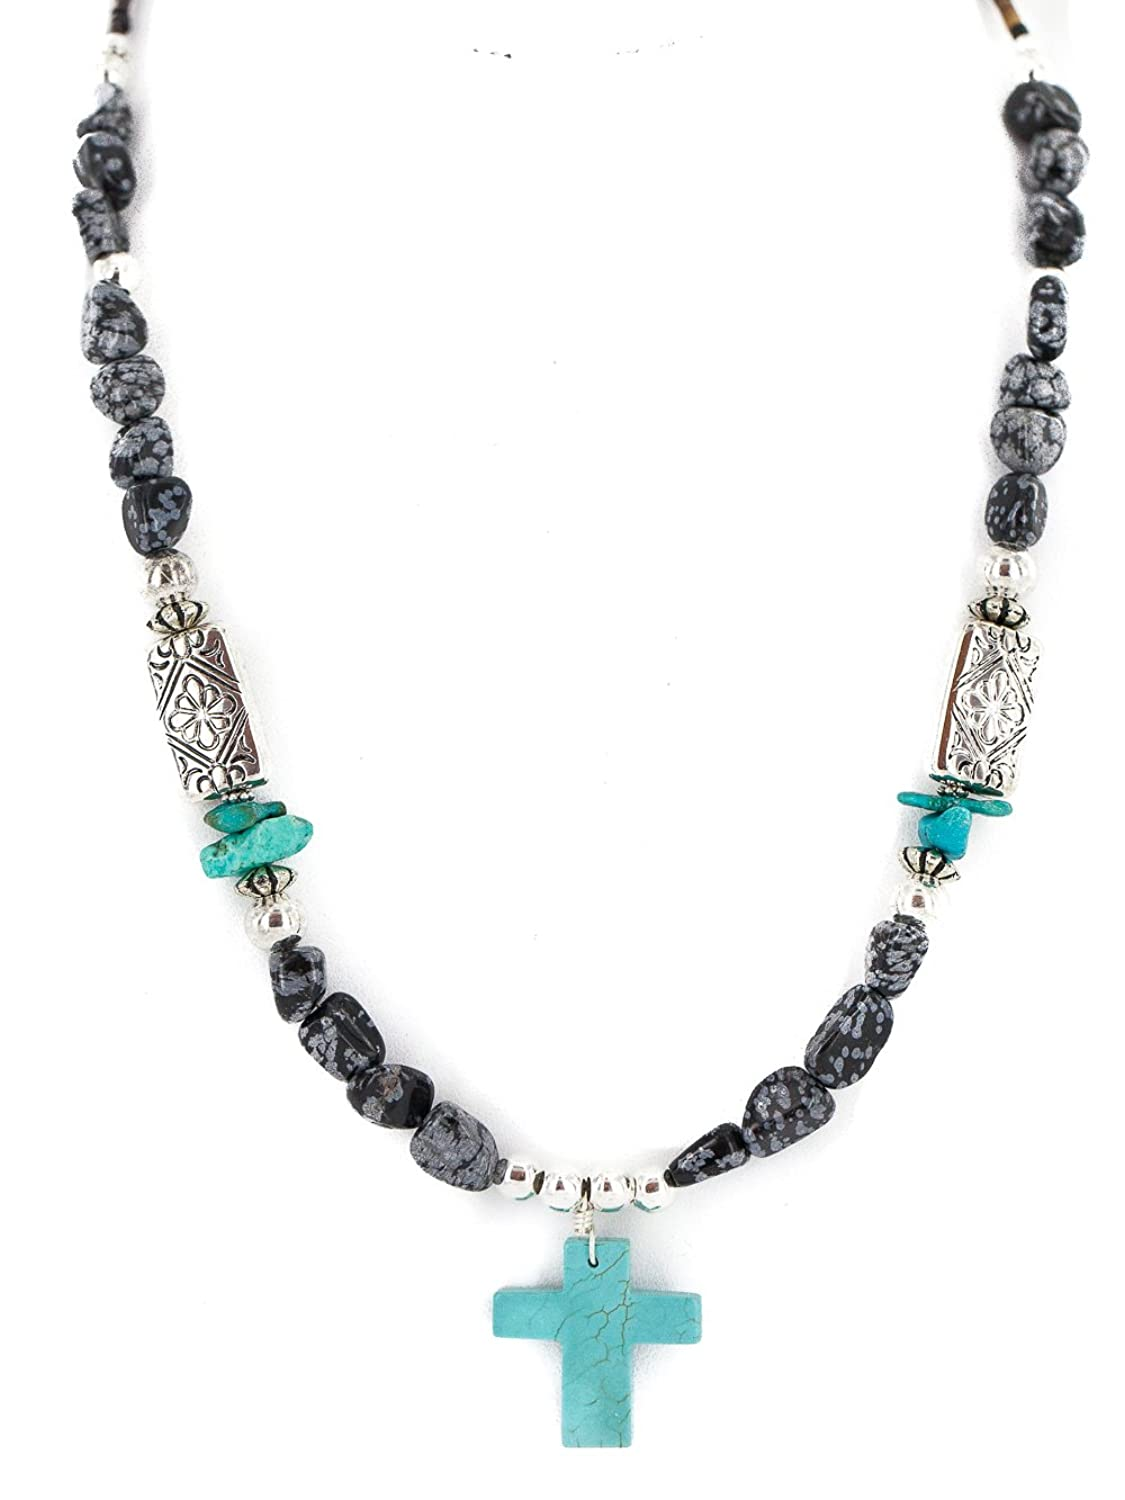 $250 Retail Tag Cross Silver Authentic Navajo Made by Charlene Little Natural Turquoise Snowflake Obsidian Native American Necklace